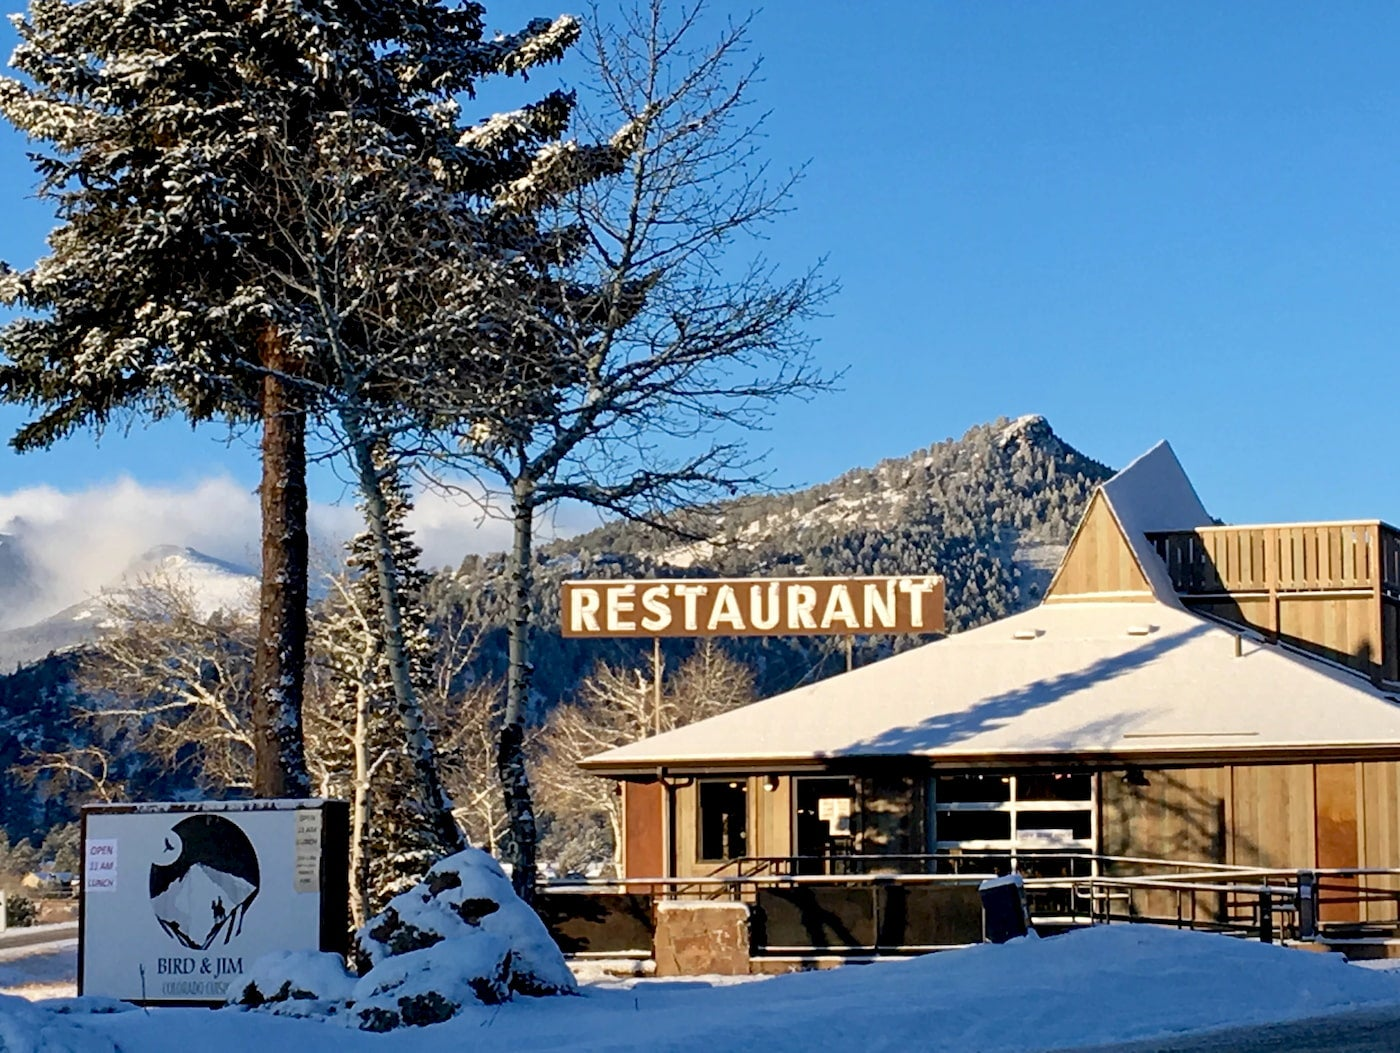 Snow covered wooden barn style restaurant with large painted sign.